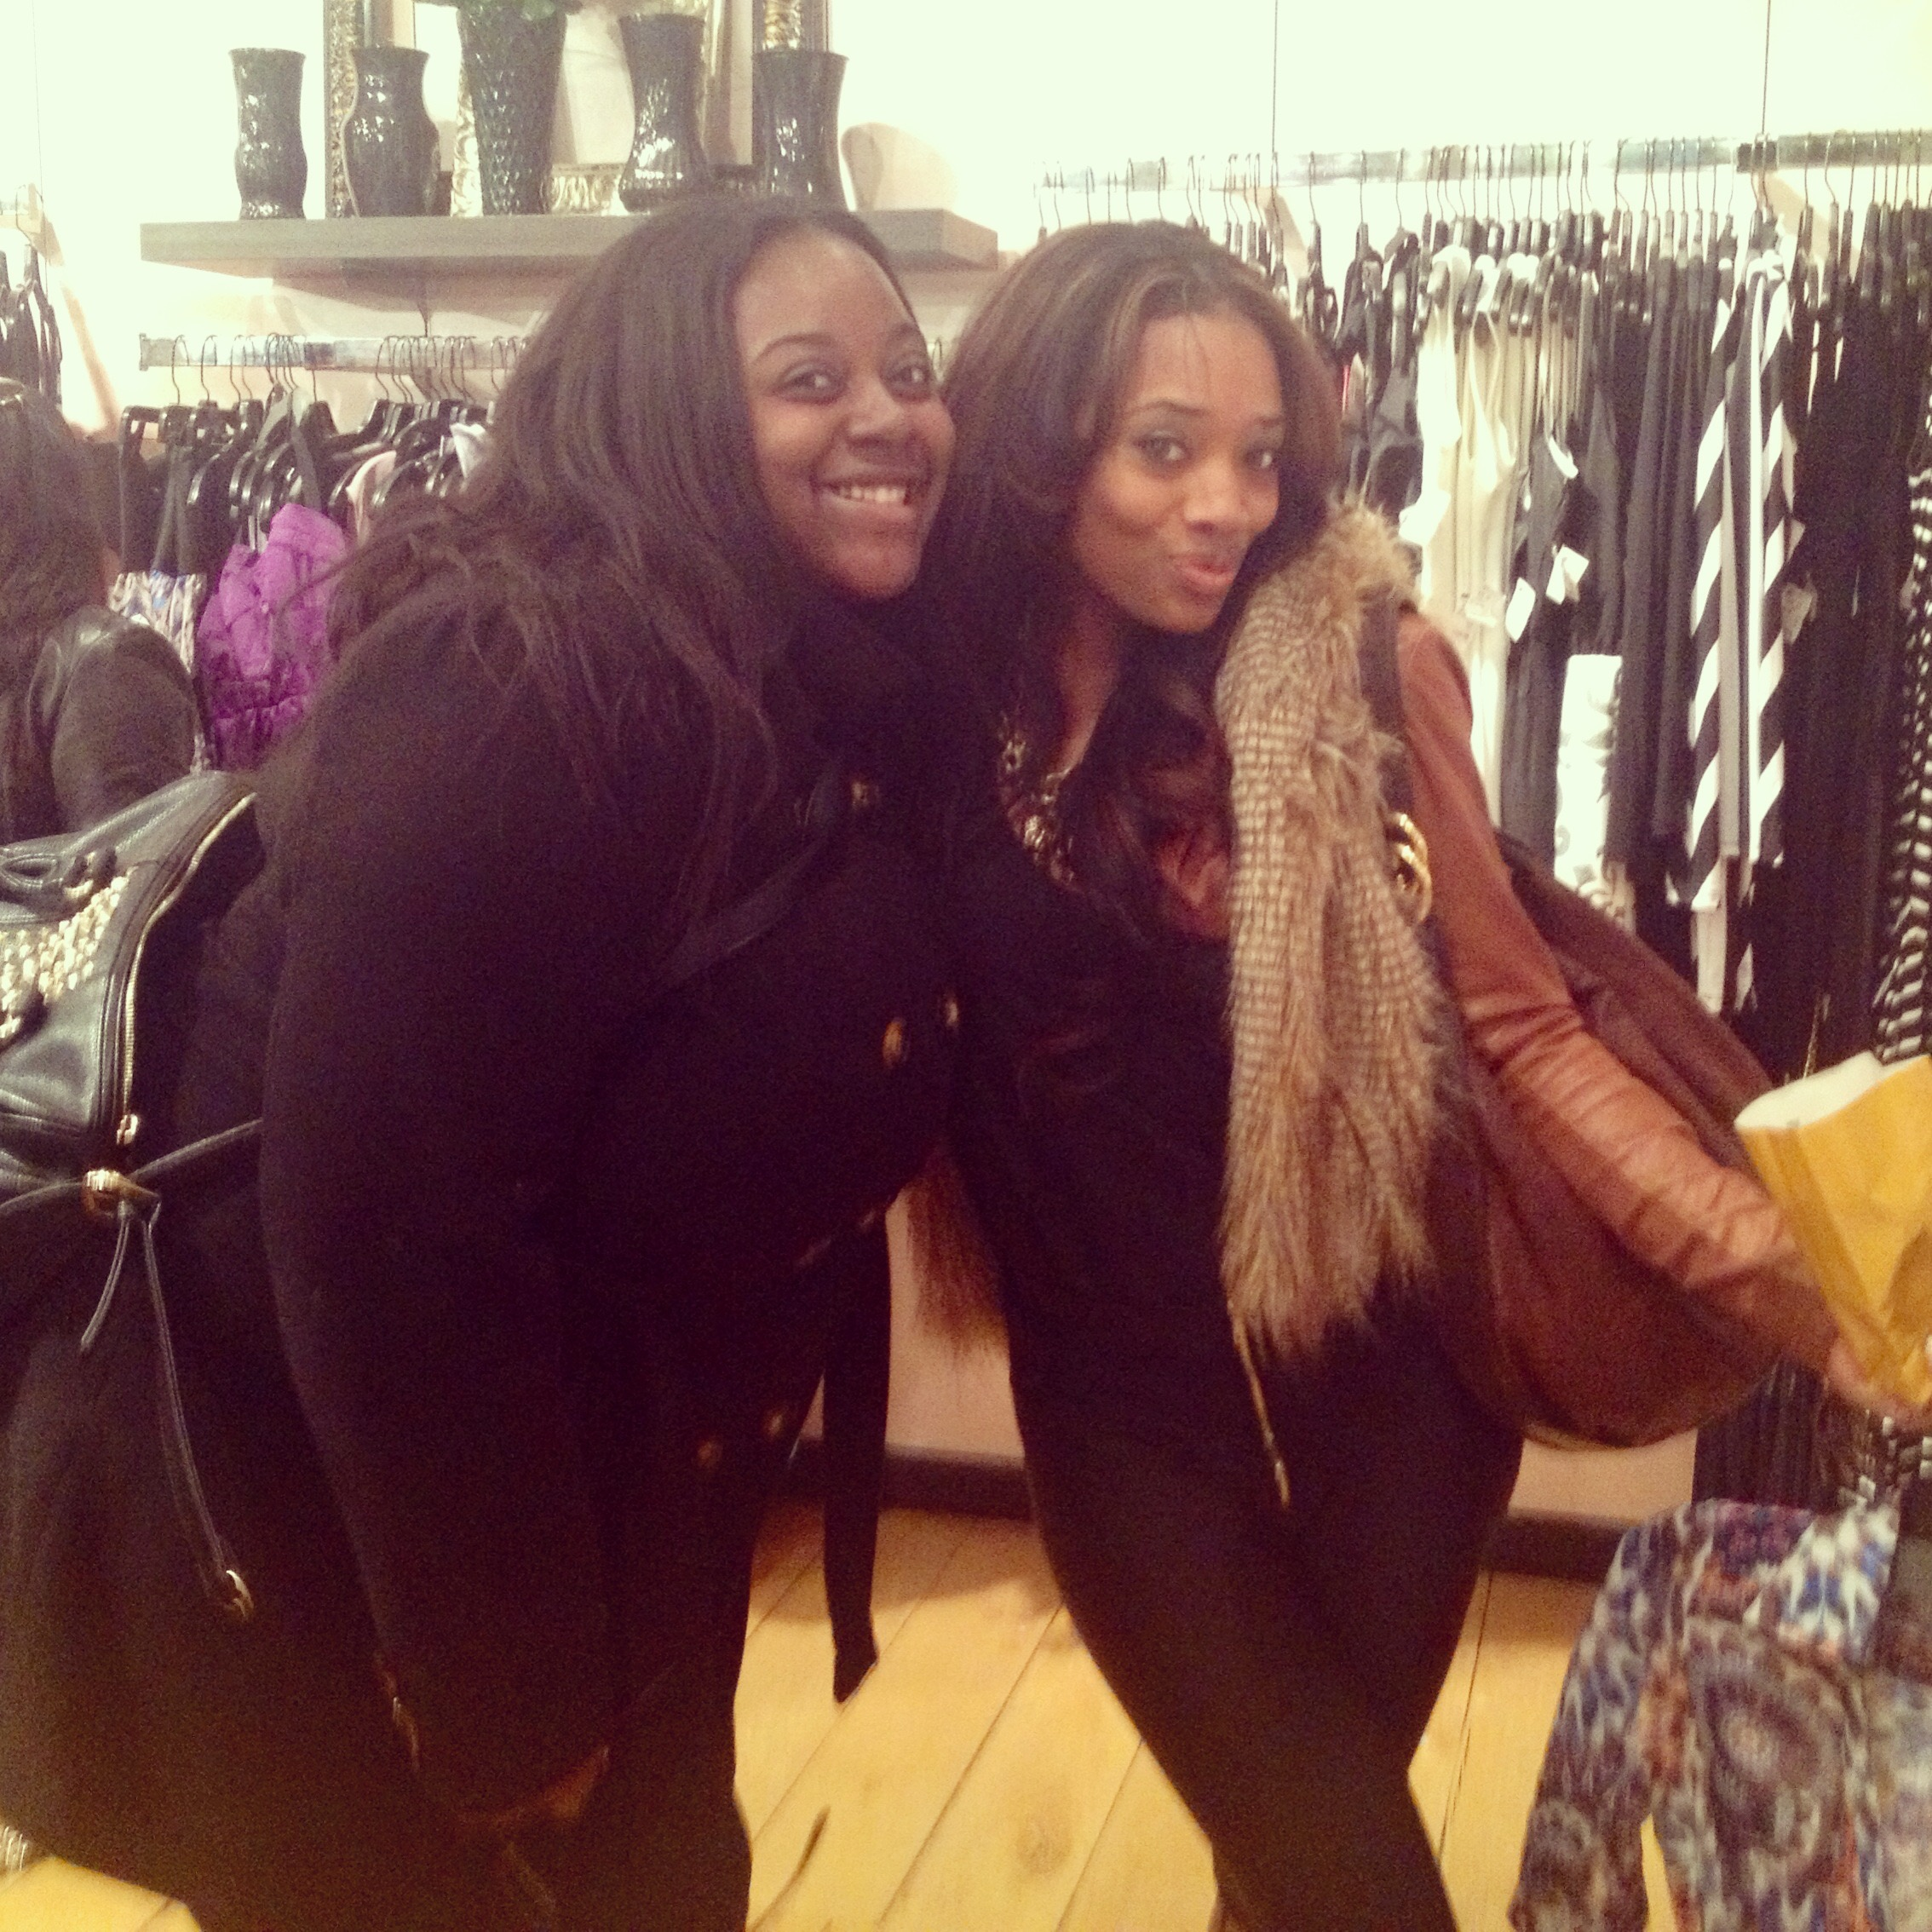 Yandy Smith of Love & Hip Hop NY